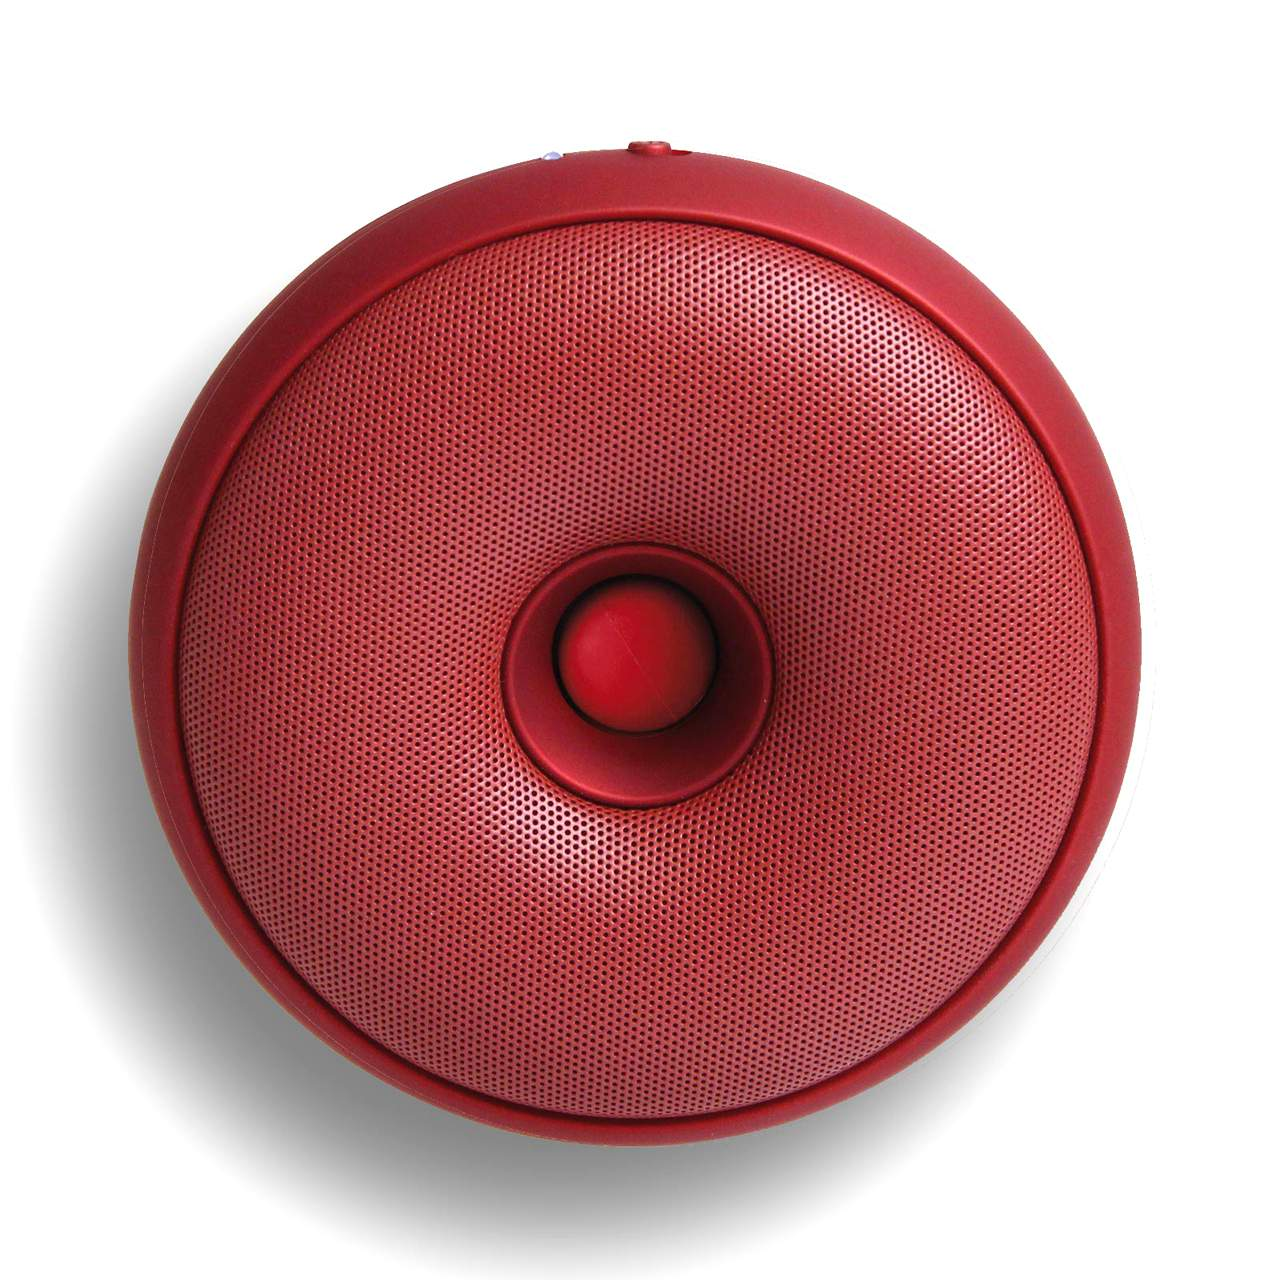 LEXON Hoop Speaker LA95 Metallic Red | The Design Gift Shop